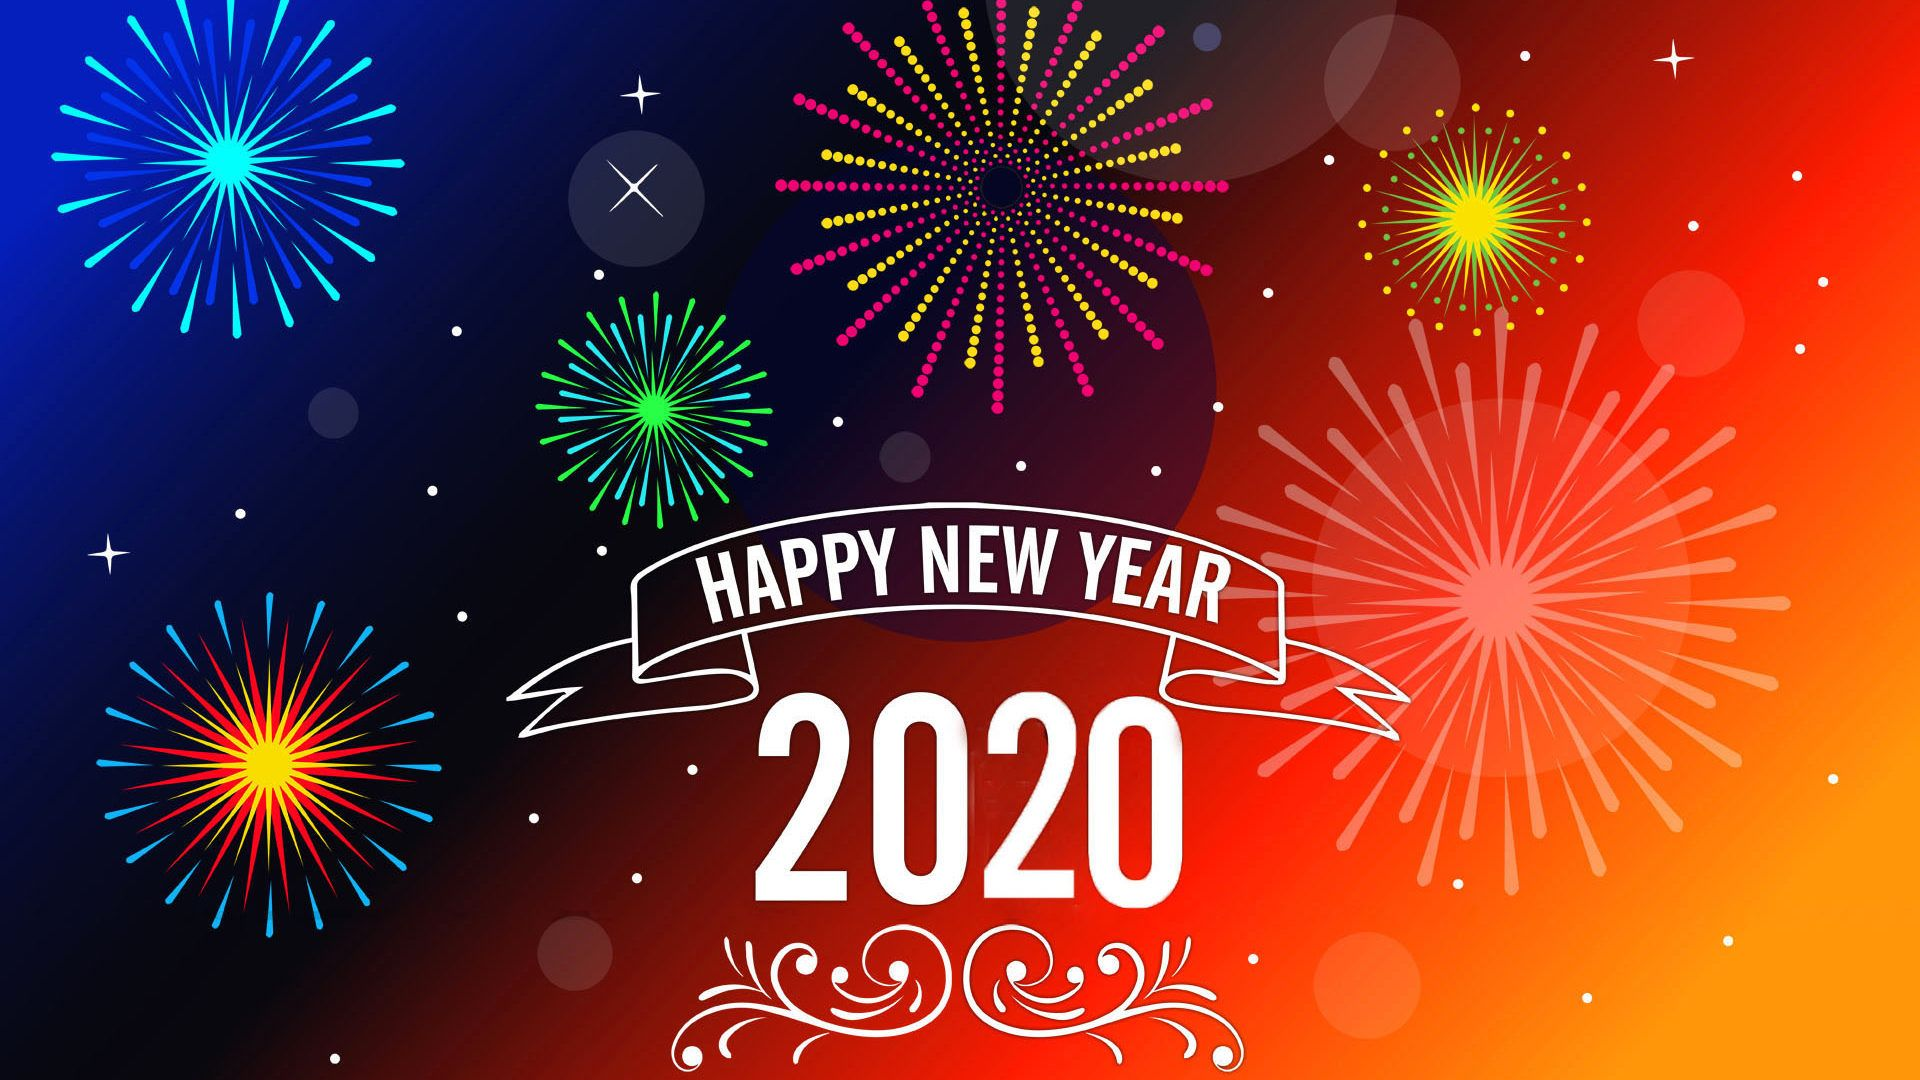 2020 New Year wallpaper picture hd